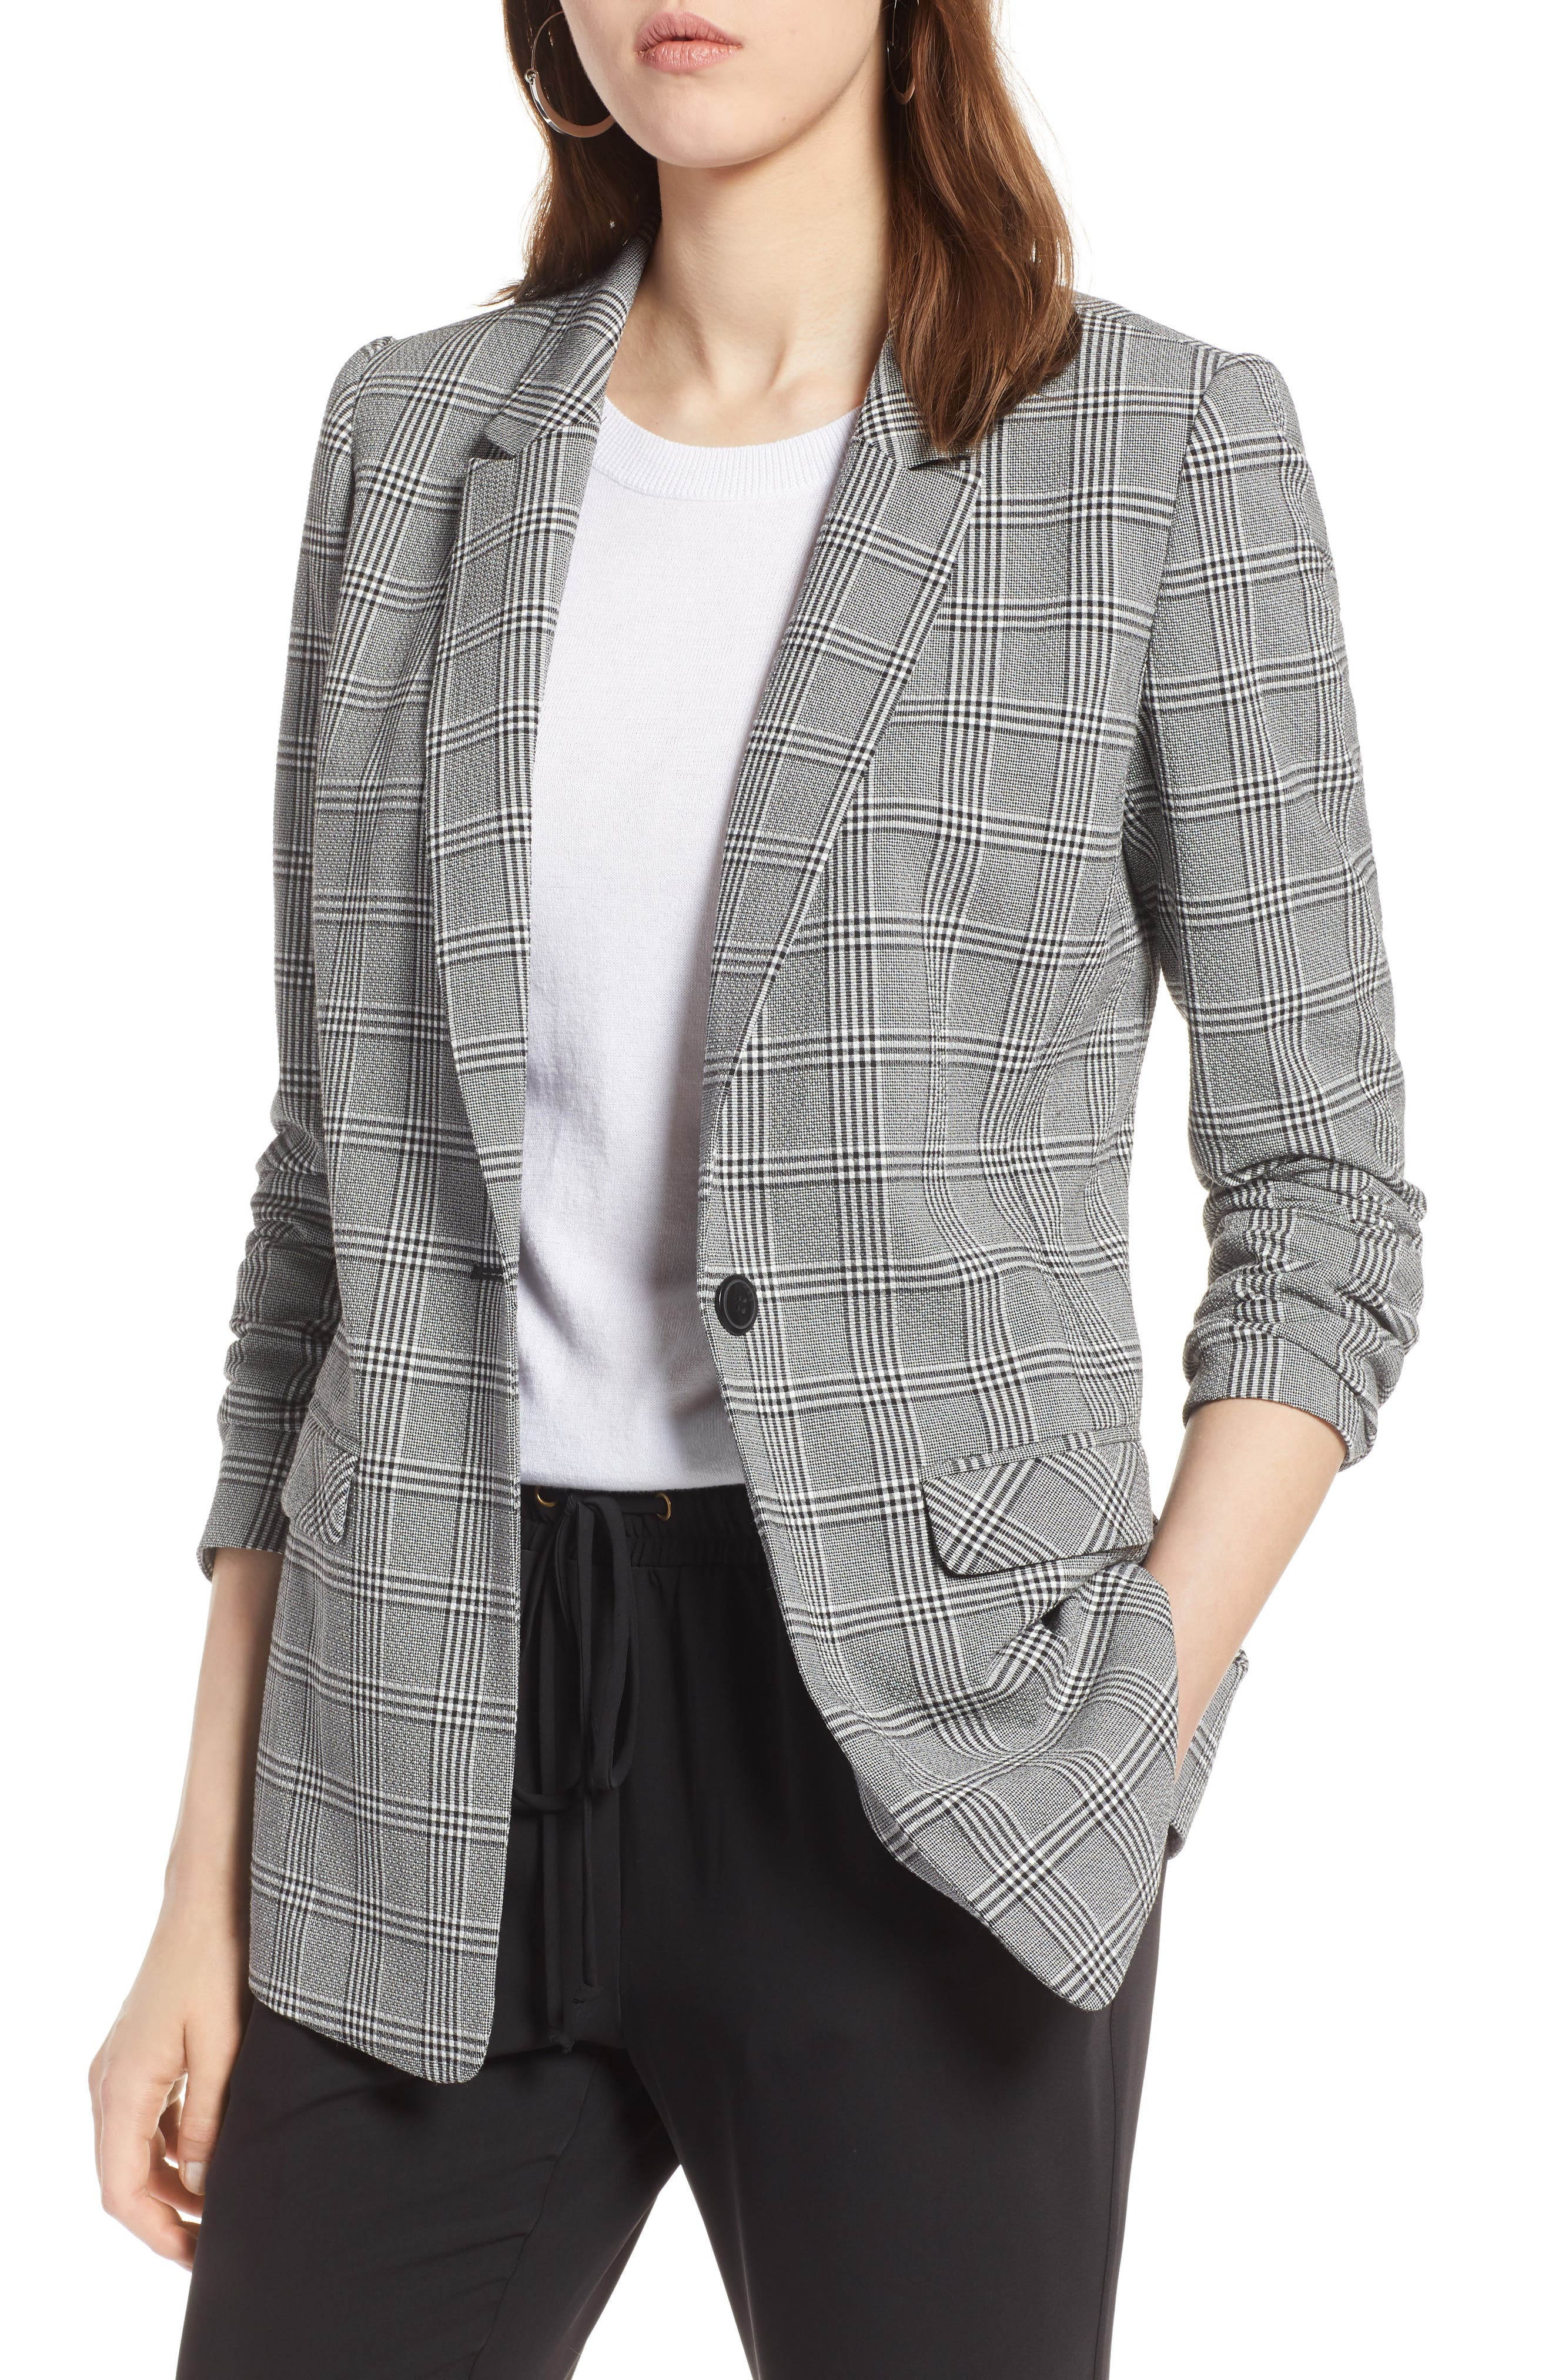 Glen Plaid Blazer,                         Main,                         color, Black- White Glen Check